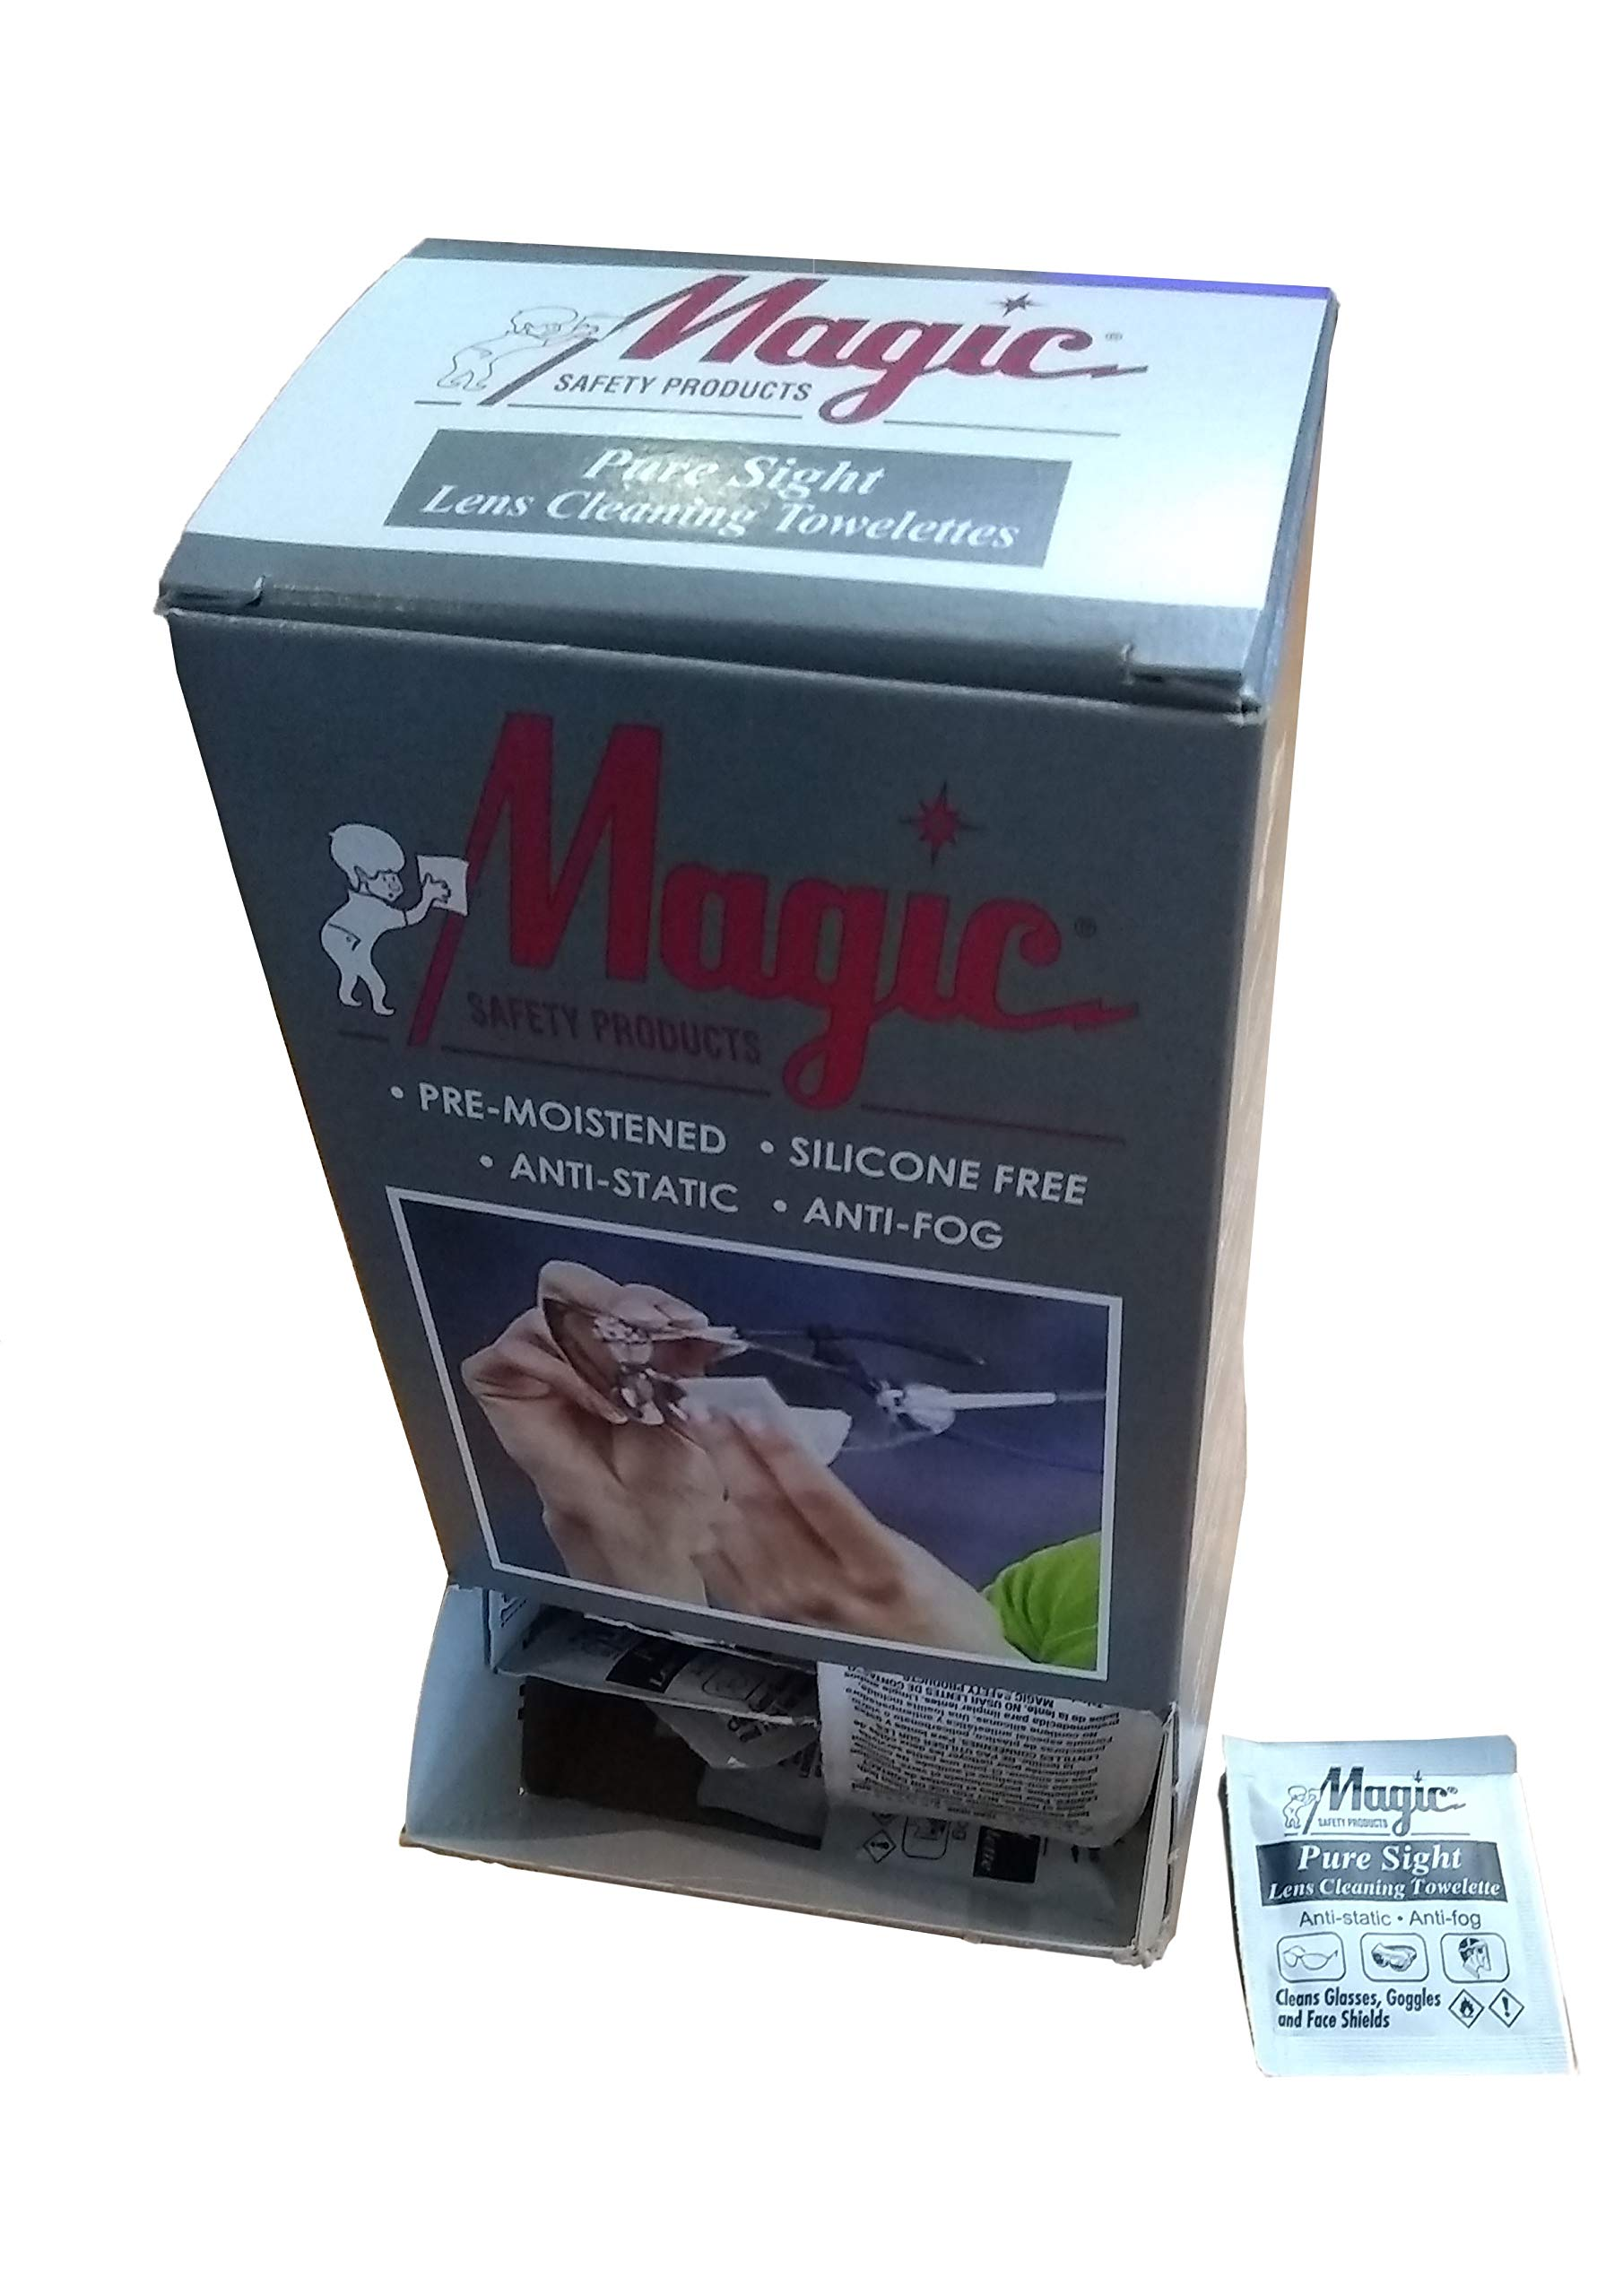 Lens Cleaning Towelettes Pure Sight Wrapped by Magic Safety - MS93165 (10 Boxes = 1 Case)